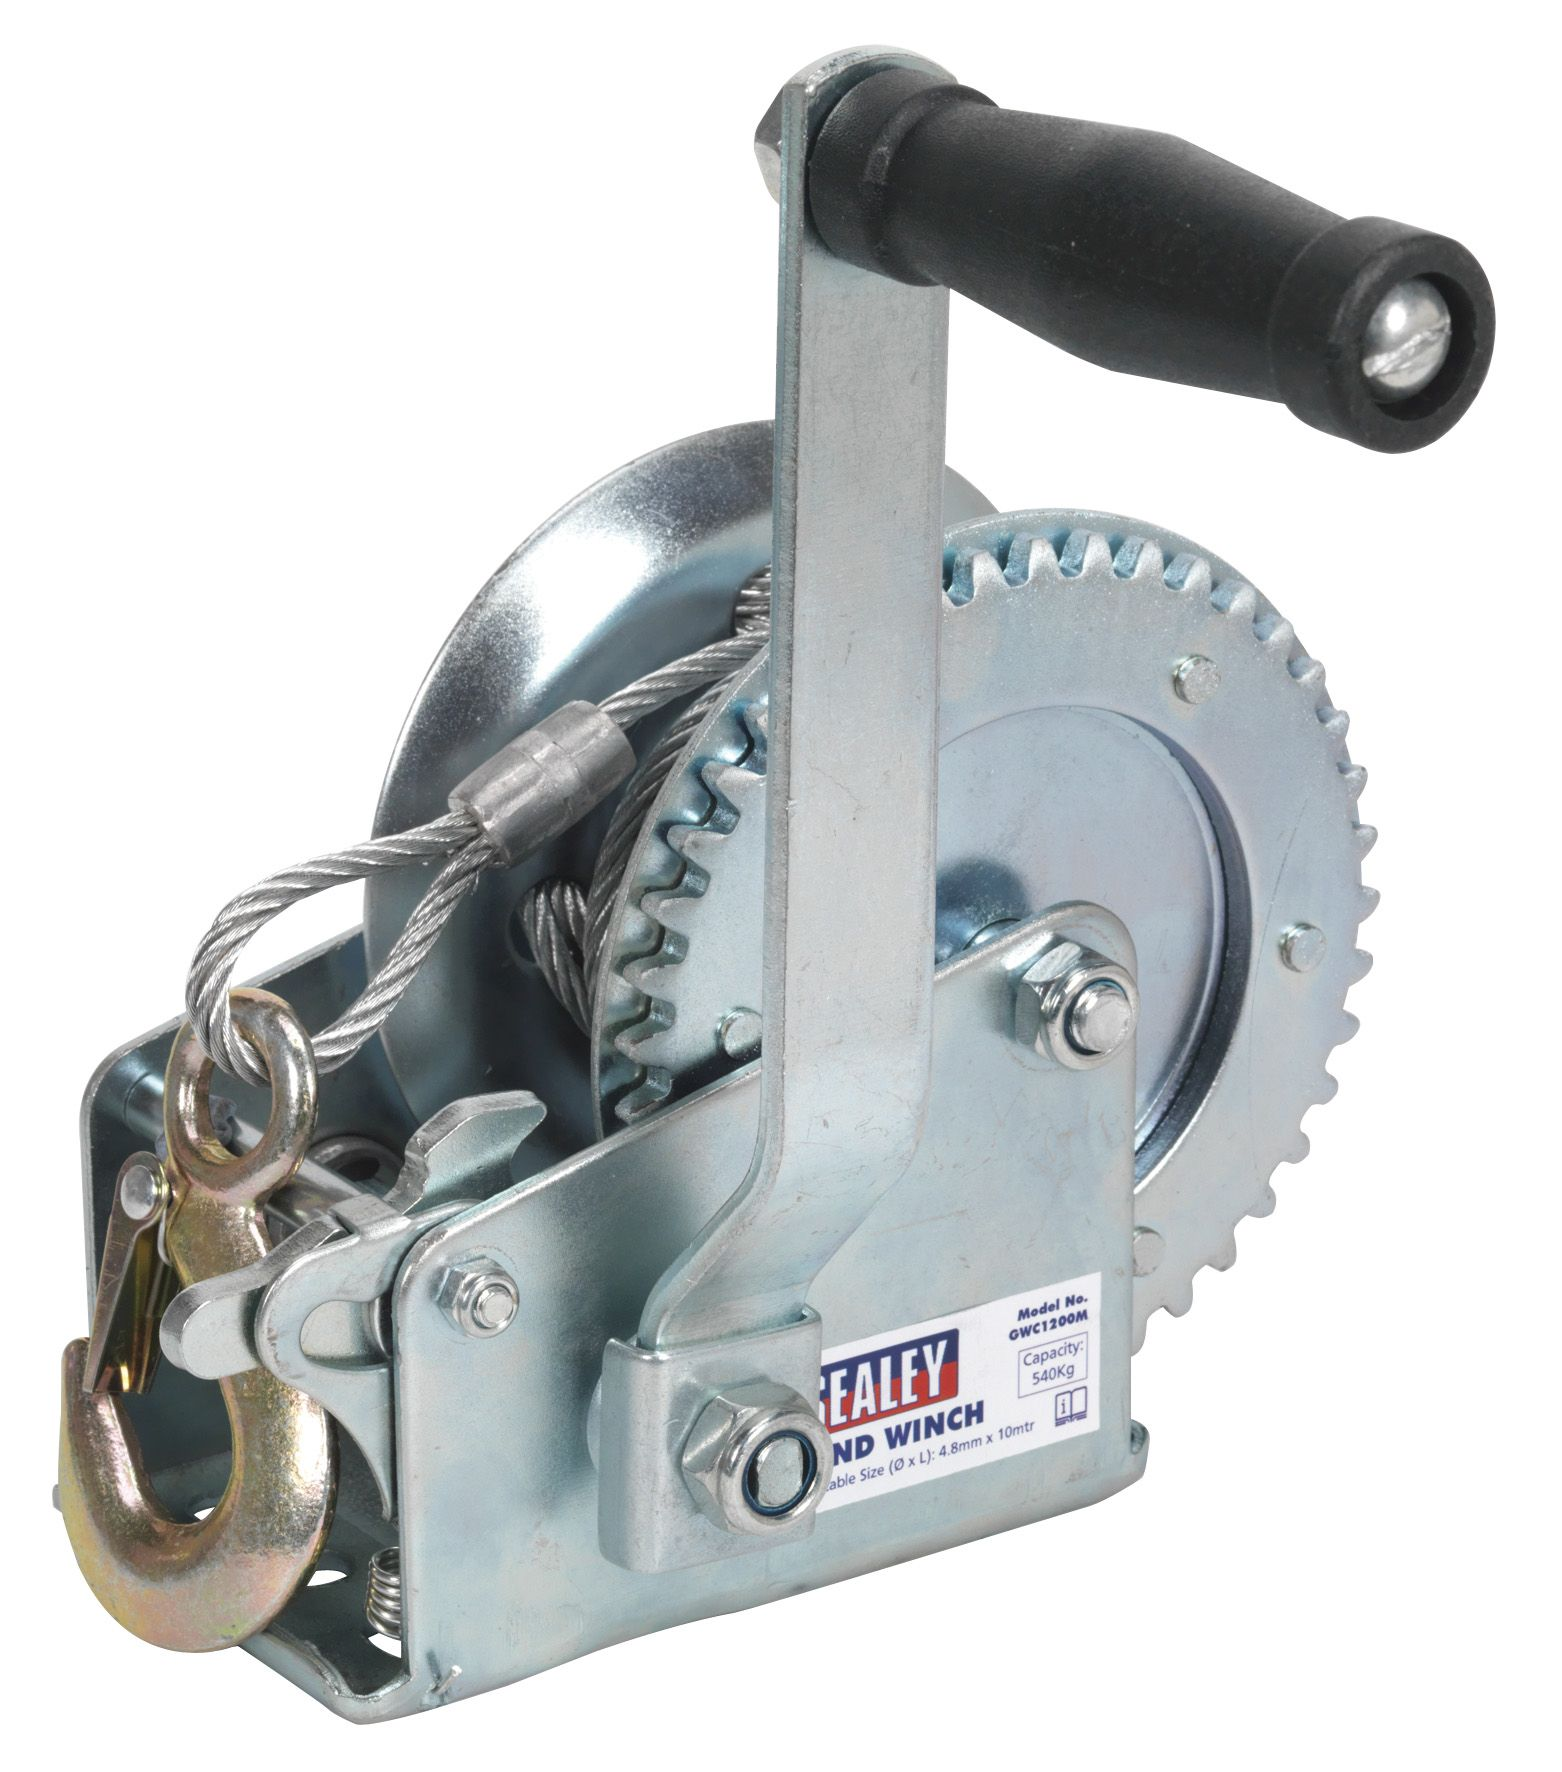 Sealey Geared Hand Winch 540kg Capacity with Cable